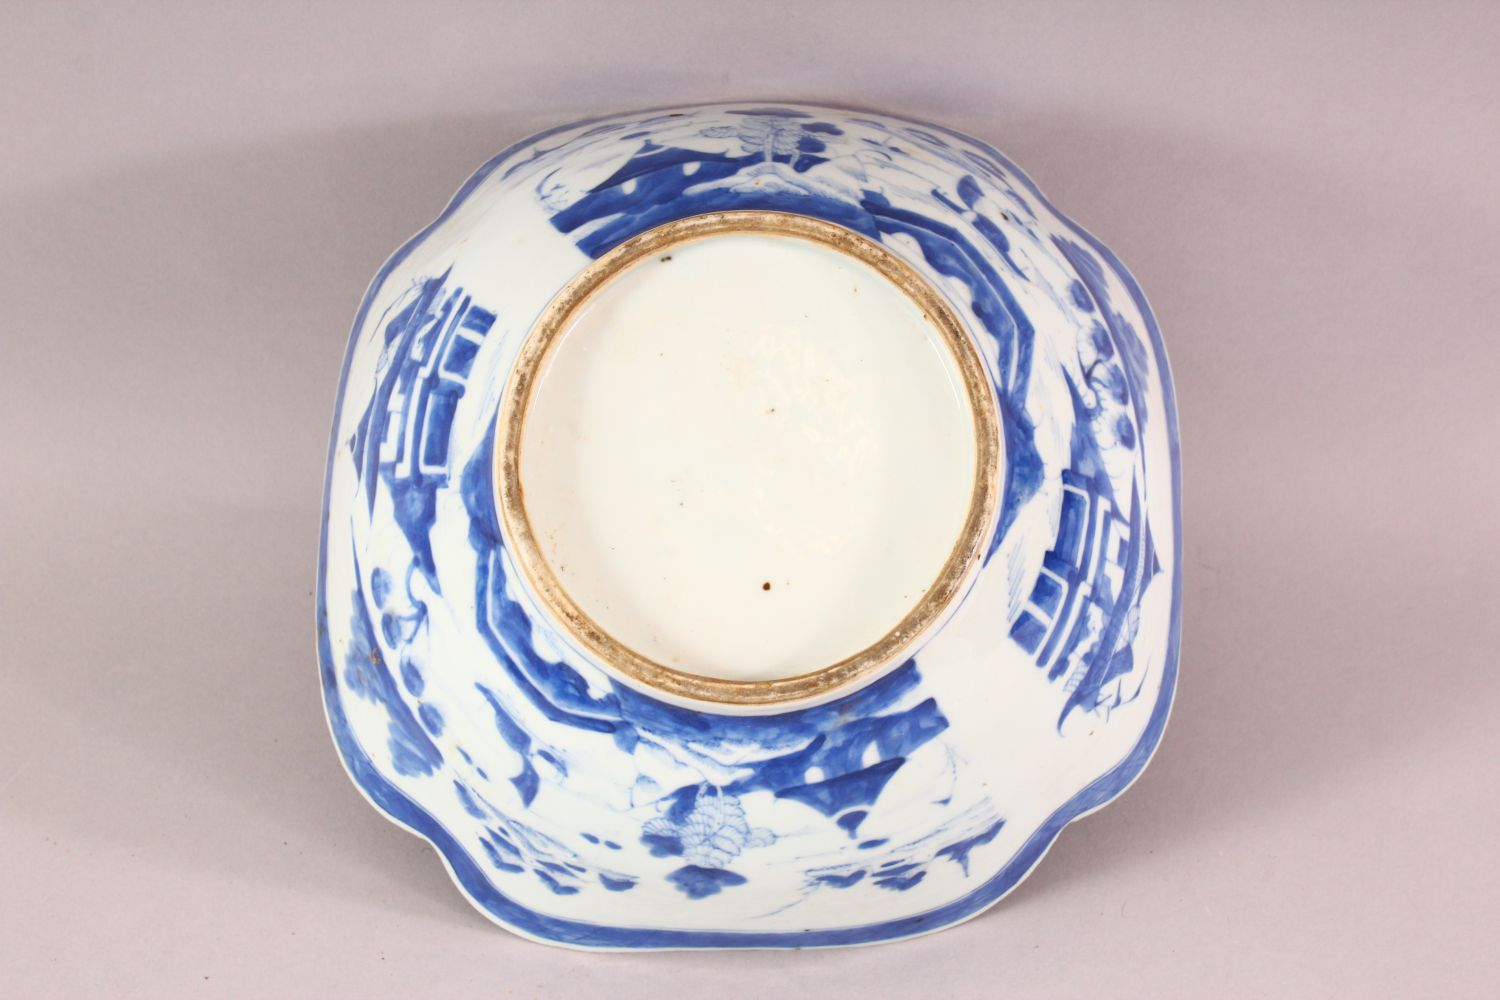 AN 18TH / 19TH CENTURY CHINESE BLUE & WHITE PORCELAIN BOWL, of quatrefoil form, decorated with - Image 6 of 6